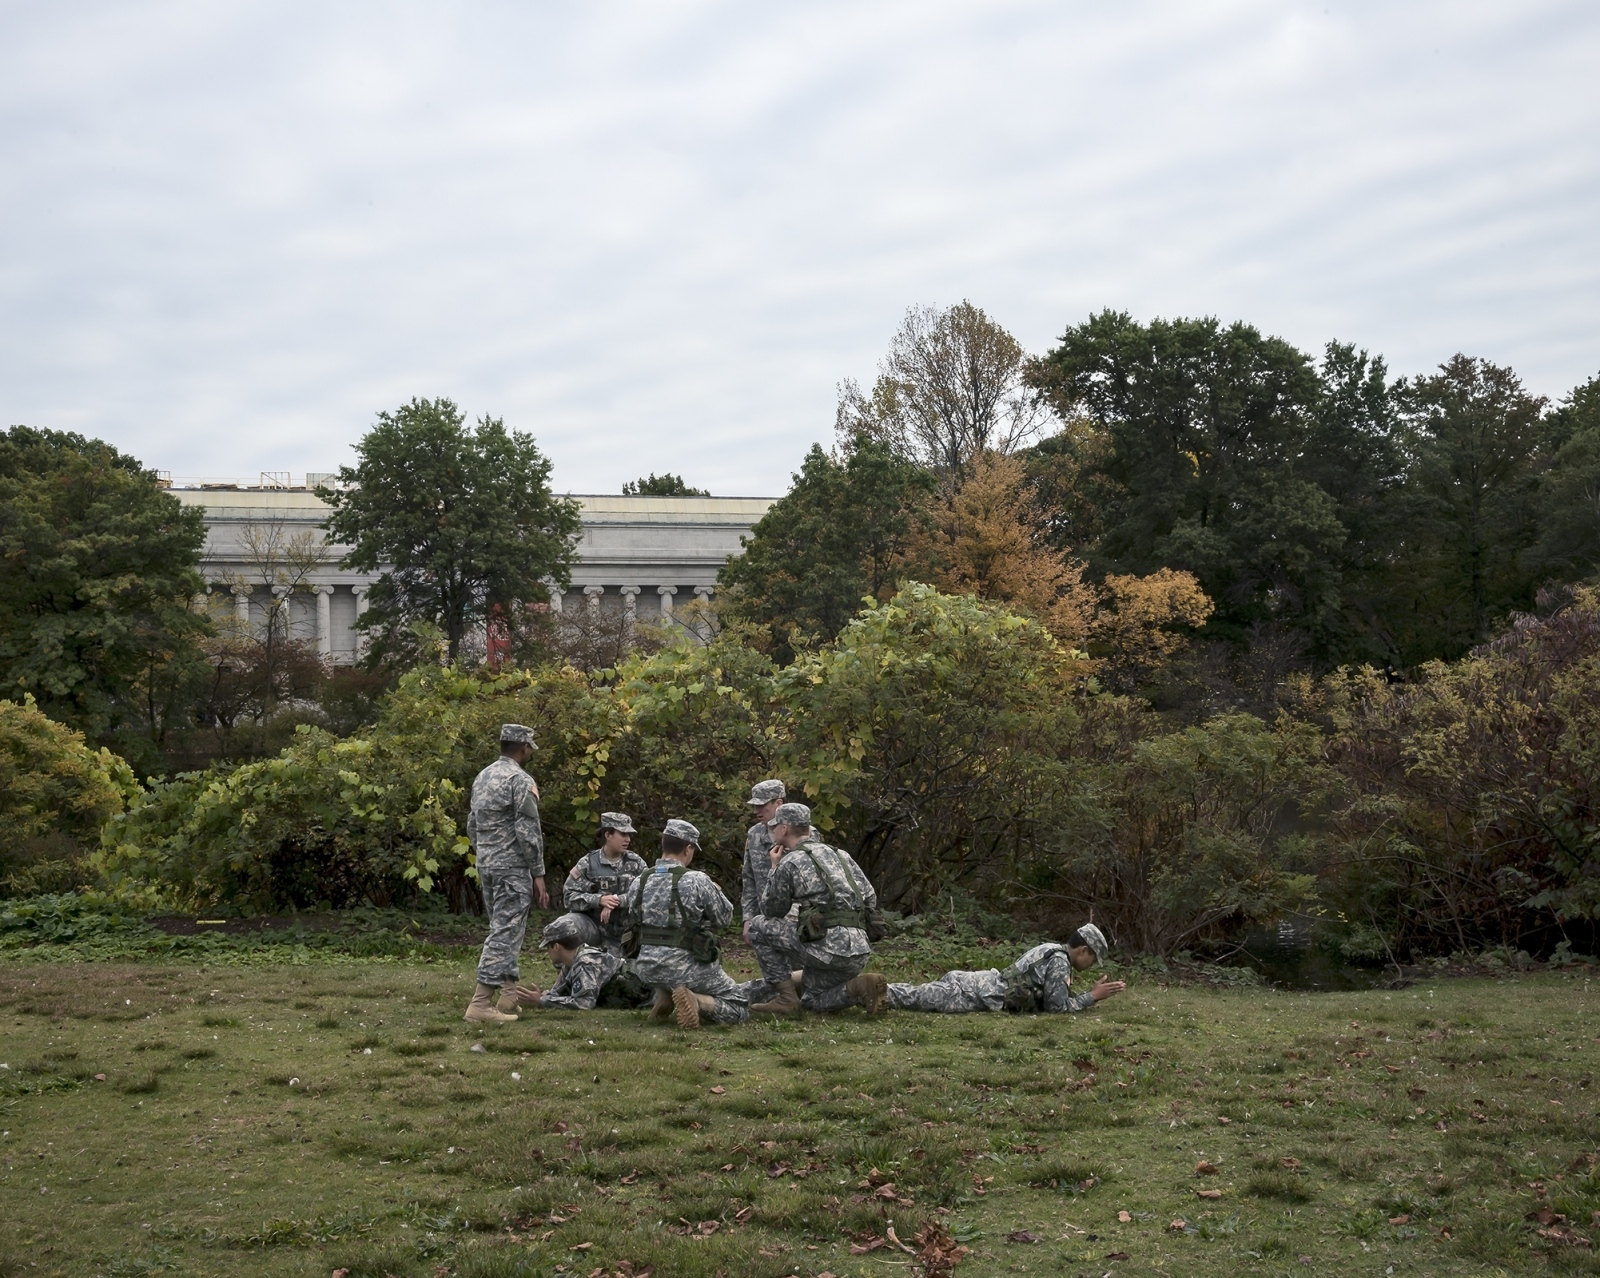 Art and Documentary Photography - Loading 2 Squad In The Park.jpg